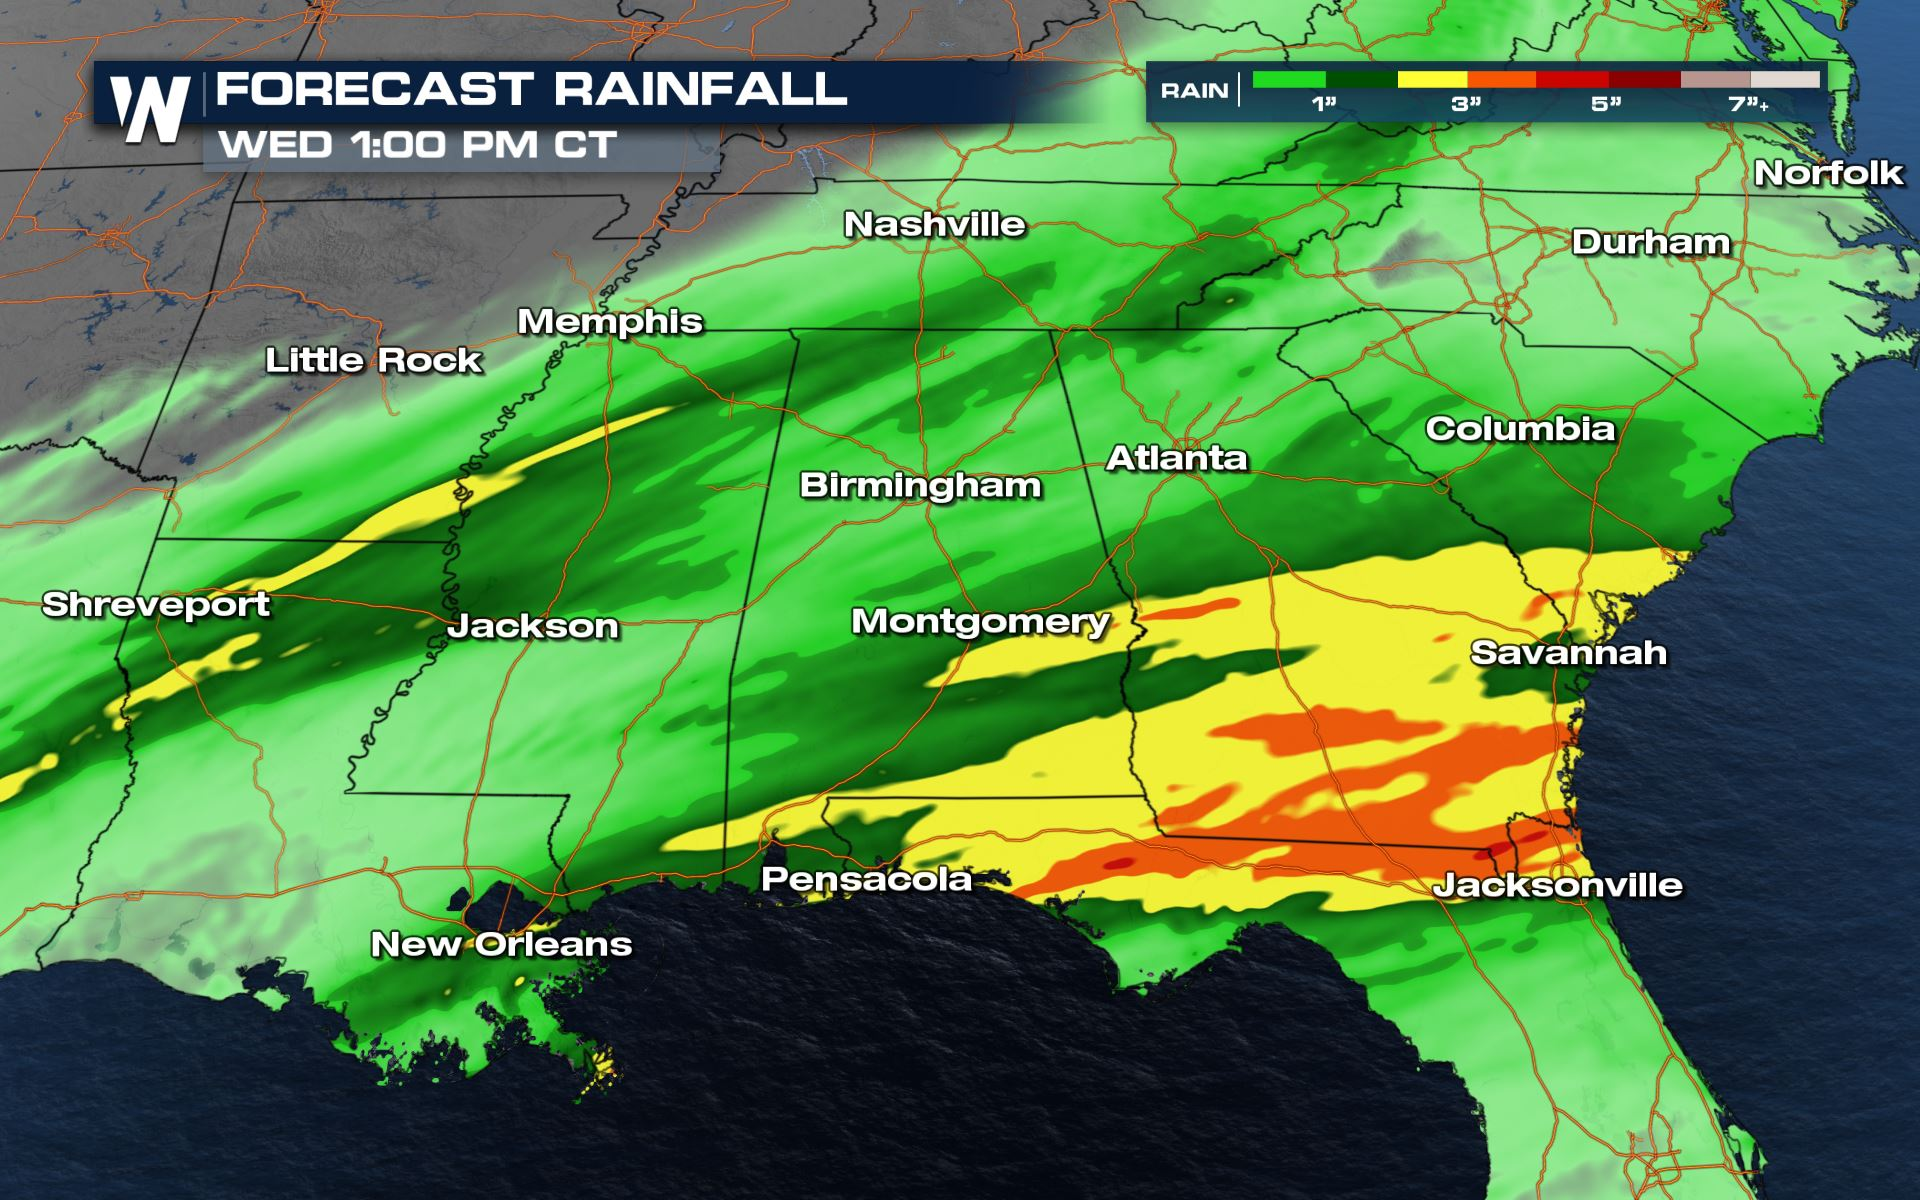 Heavy Rain and Flooding Possible for the South the Next Few Days